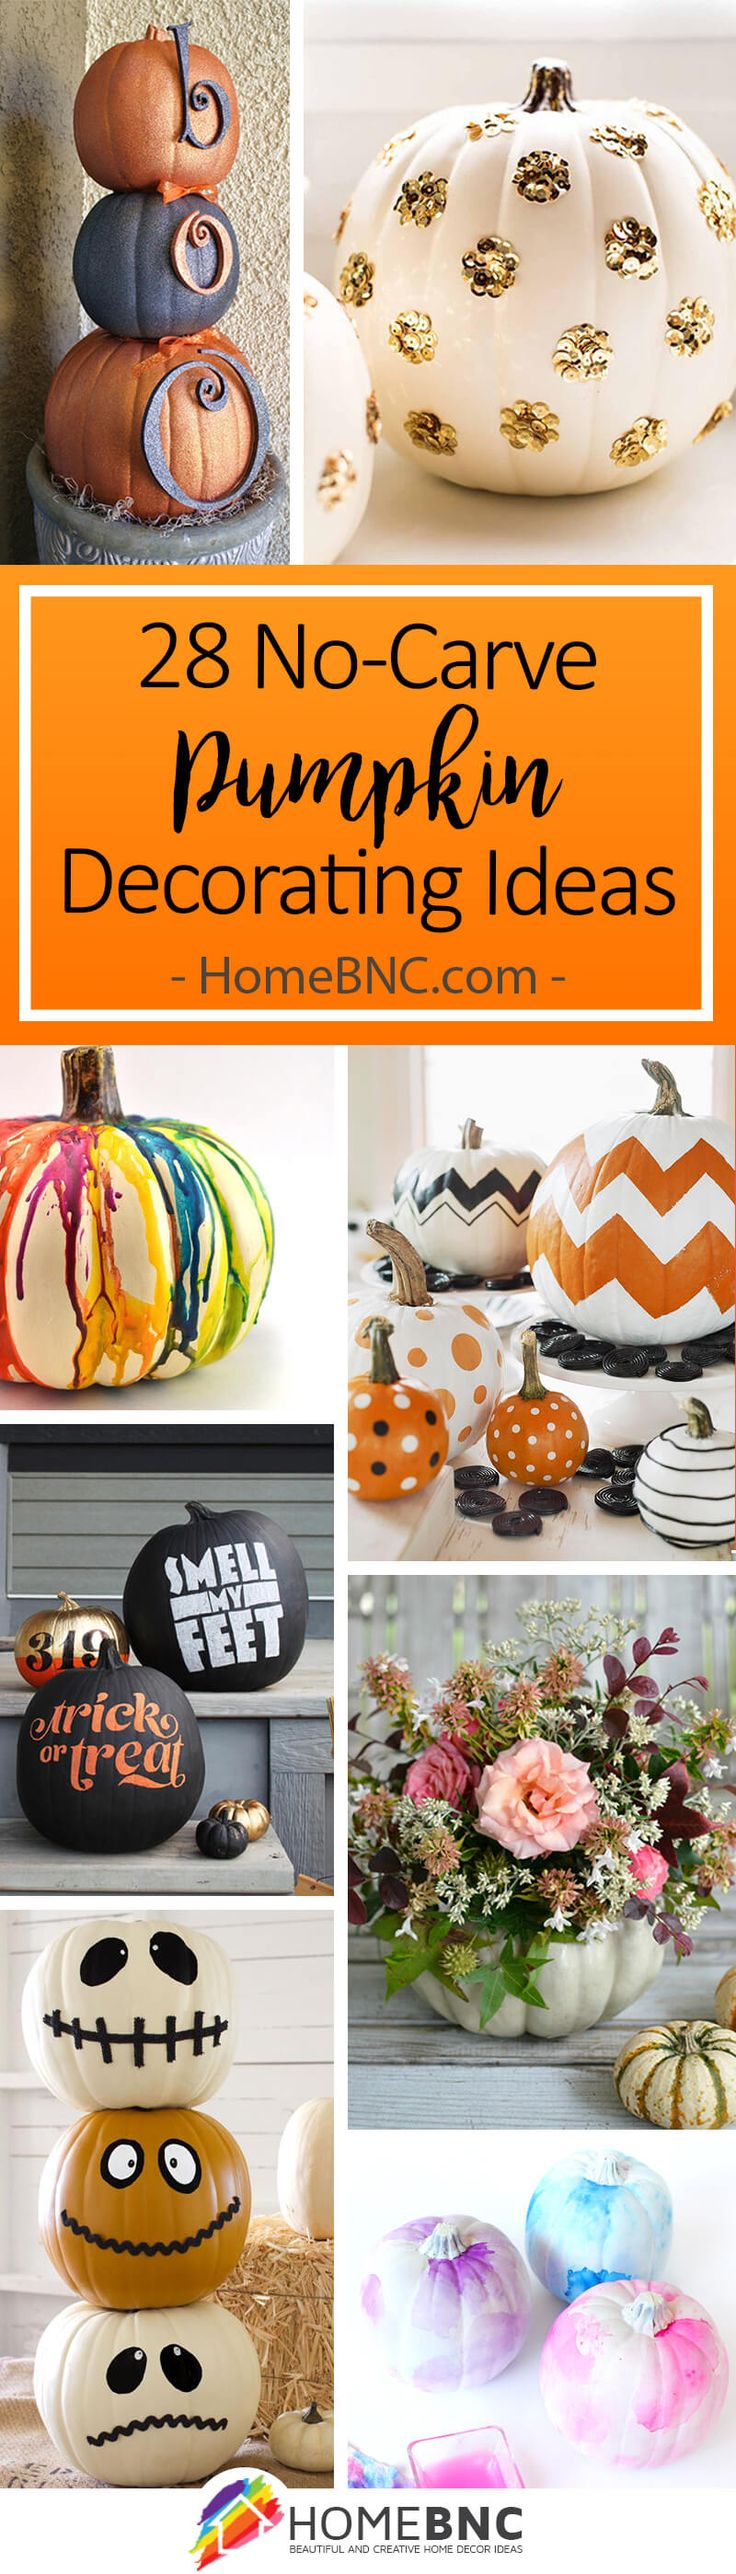 No-Carve Pumpkin Decorating Ideas. Pumpkins are all part of Halloween Decorations and here are ideas and inspiration to Make Your Own, without the mess of carving